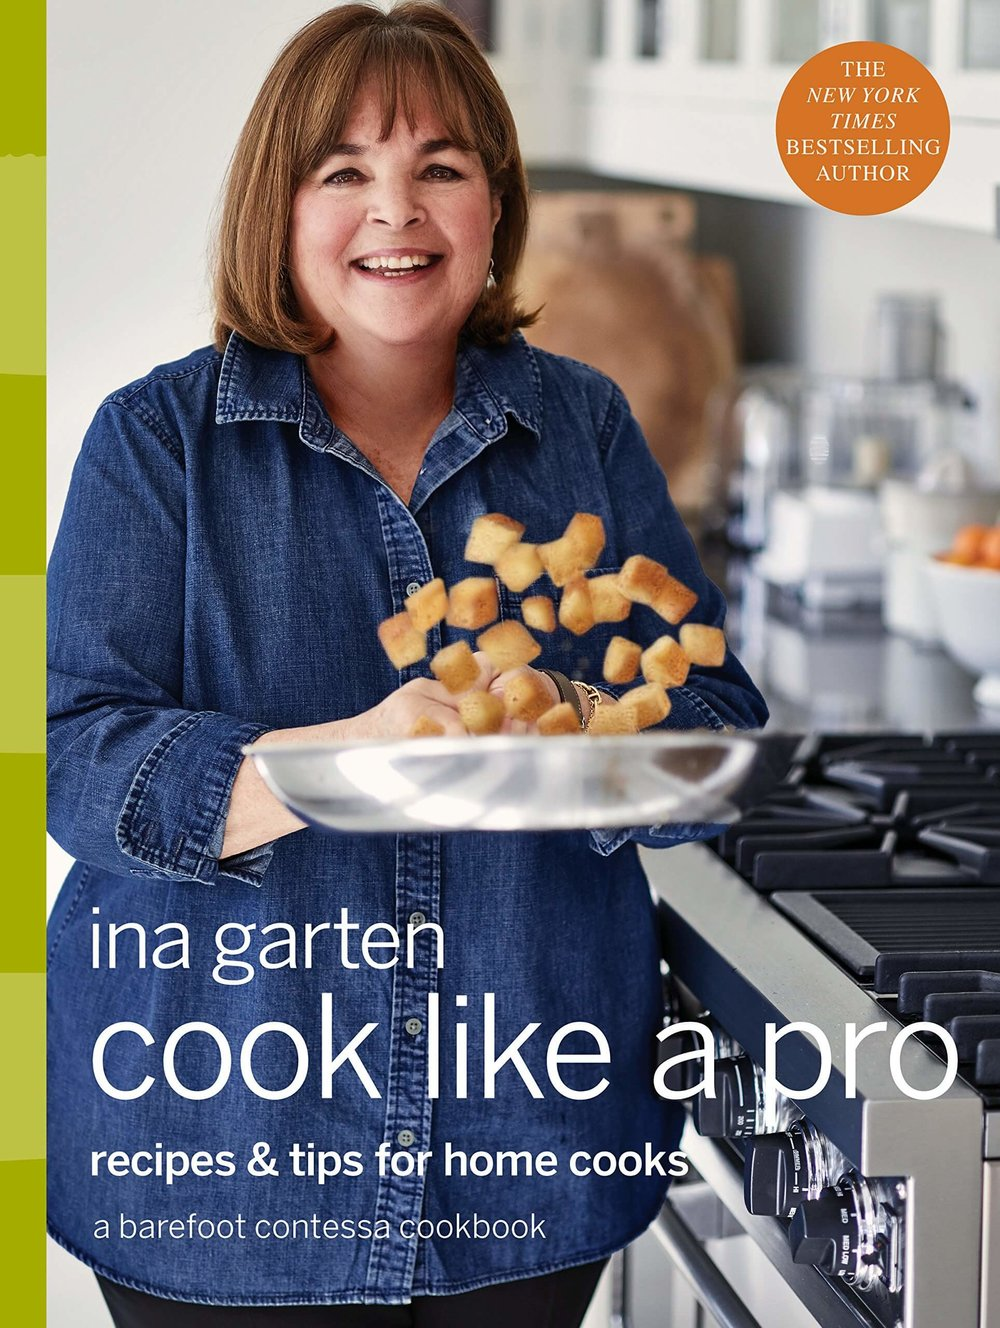 Click to Purchase - Cook Like a Pro: Recipes and Tips for Home Cooks by Ina Garten